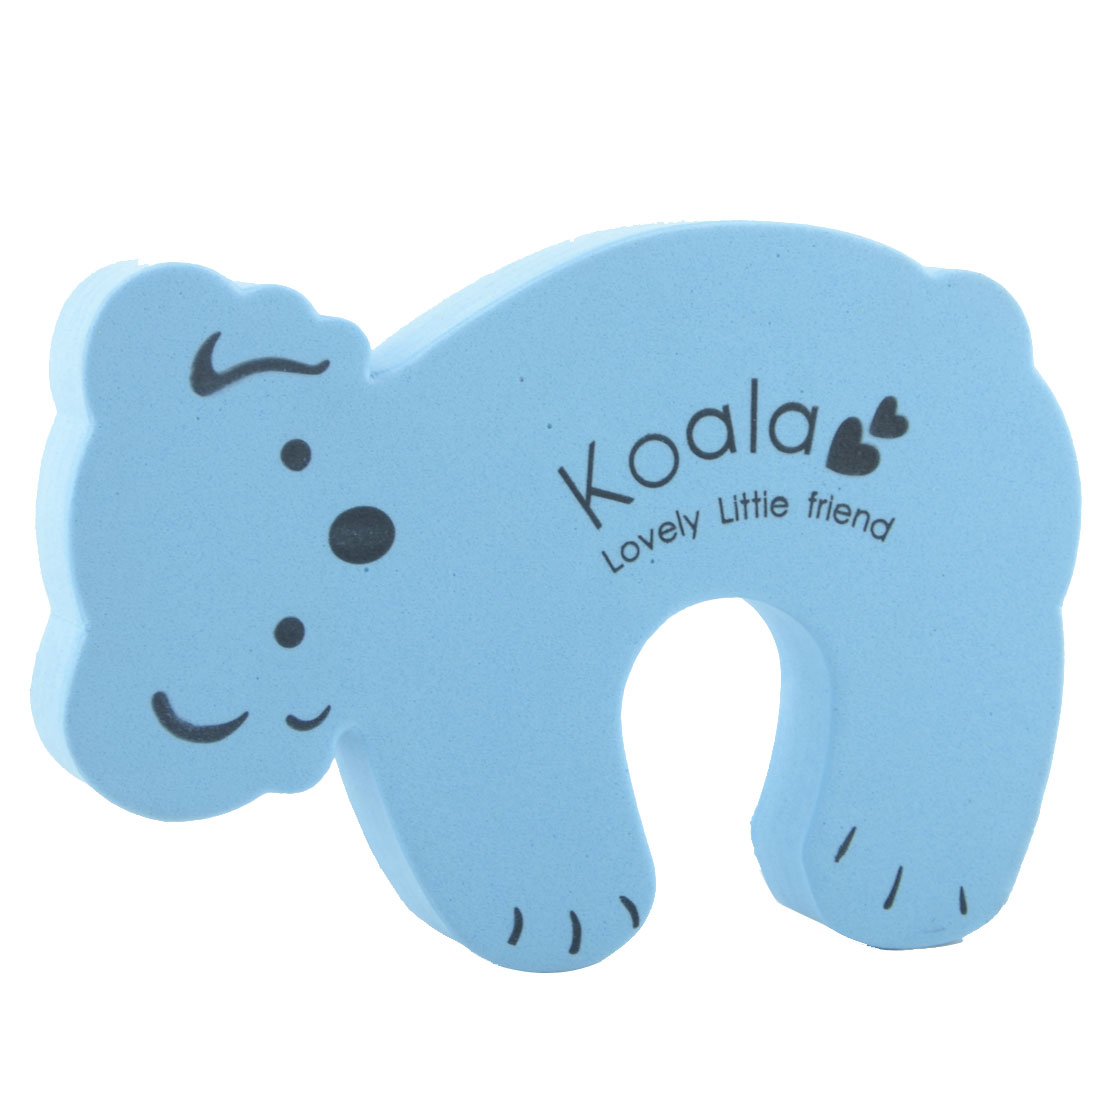 EVA Blue Cartoon Koala Shape Finger Safety Guard Doorstop Door Stopper Lock